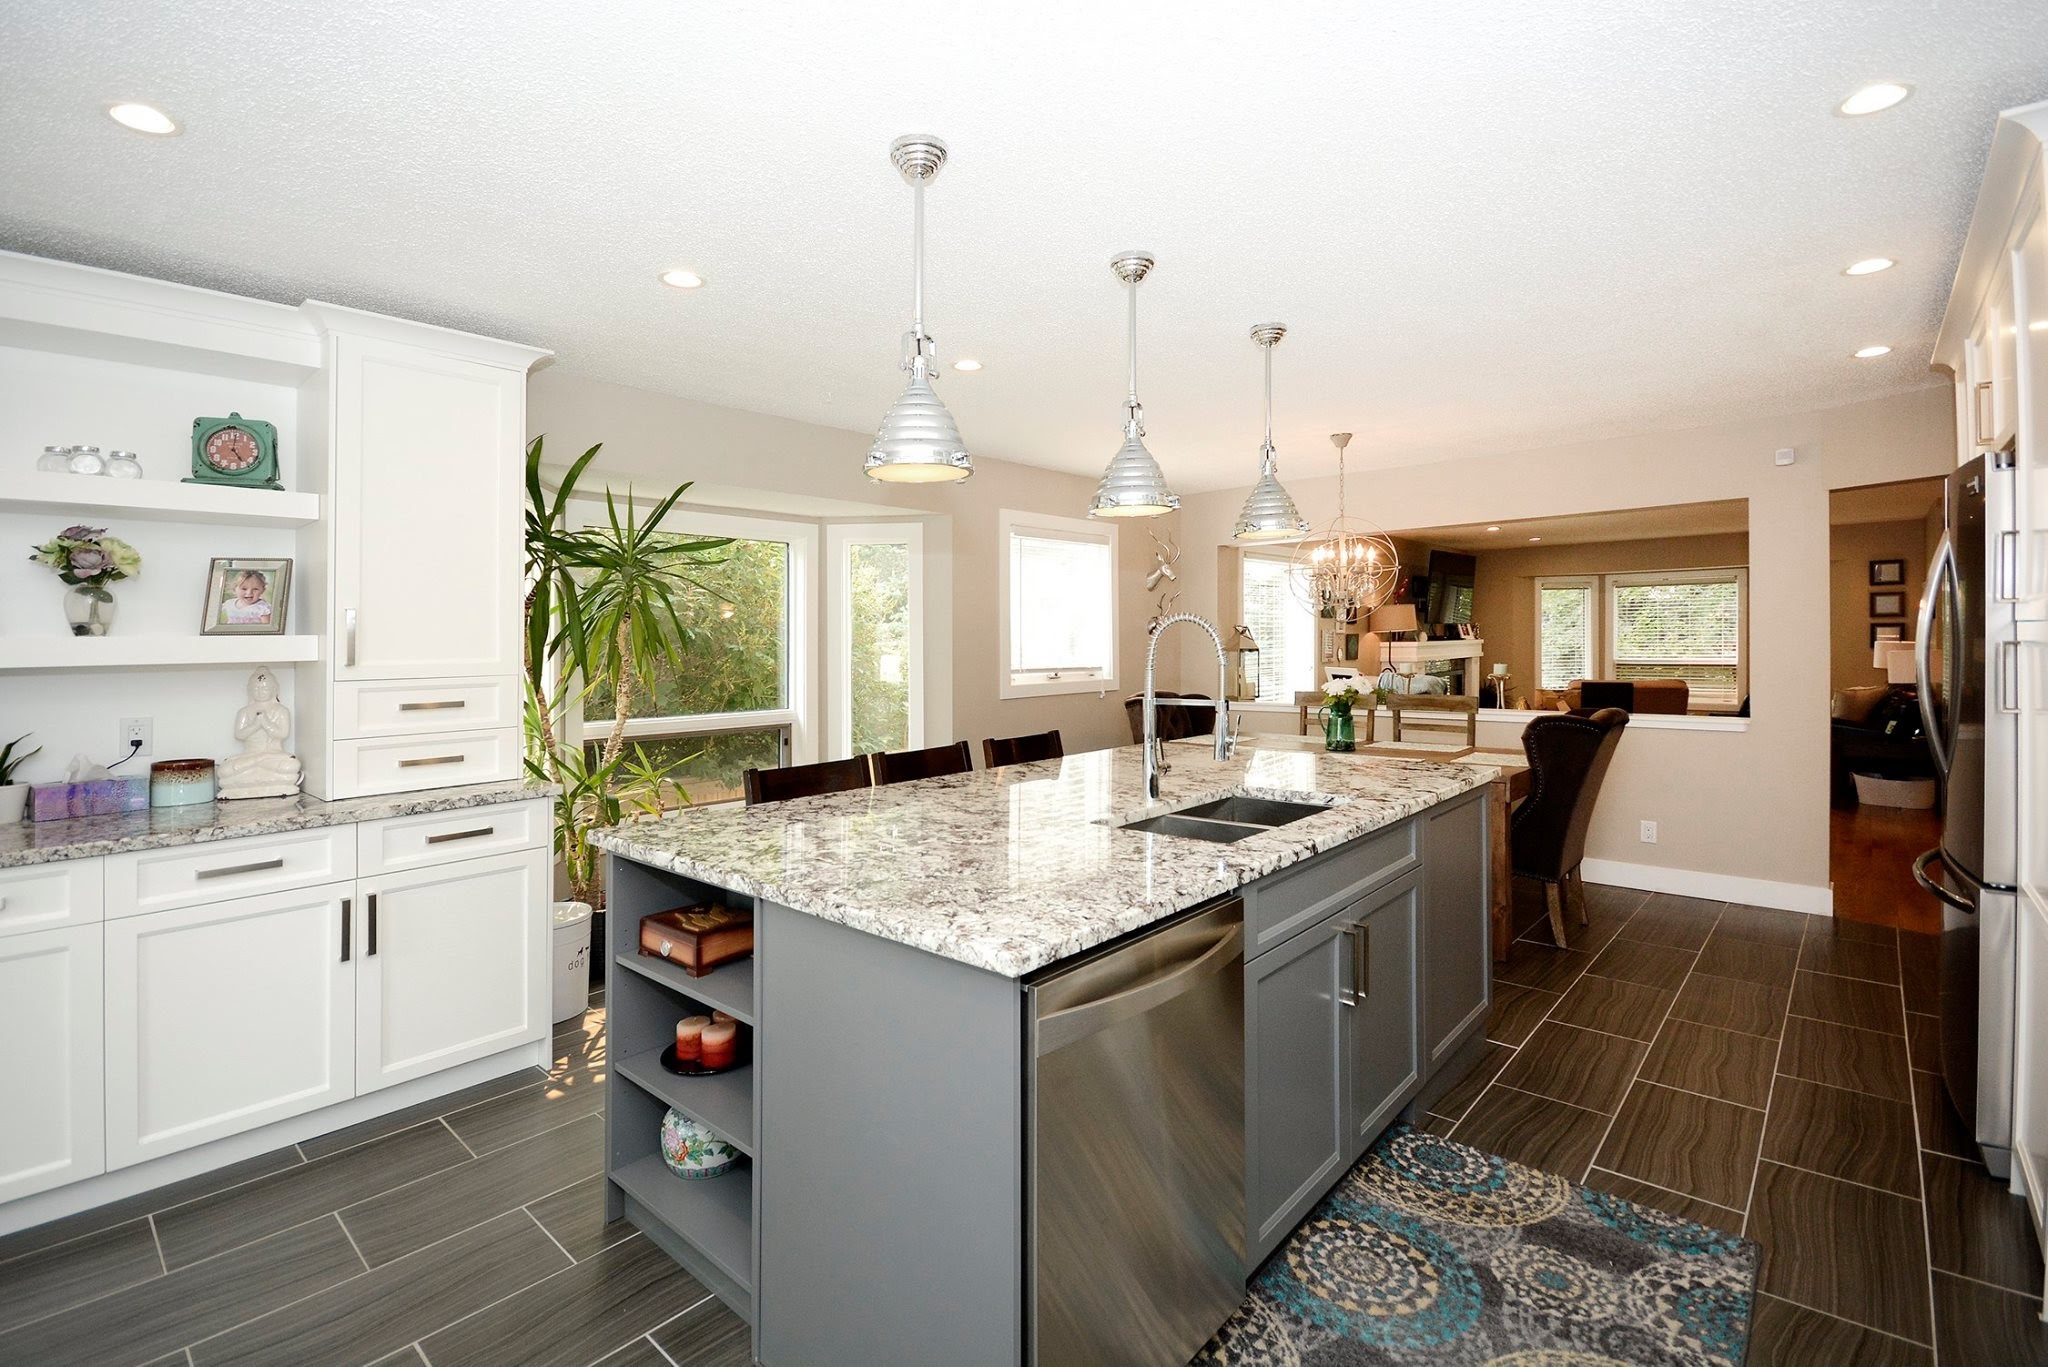 Interior photo of kitchen renovation with new granite-topped work island in the centre, new grey tile flooring with white cabinets and modern light fixtures.